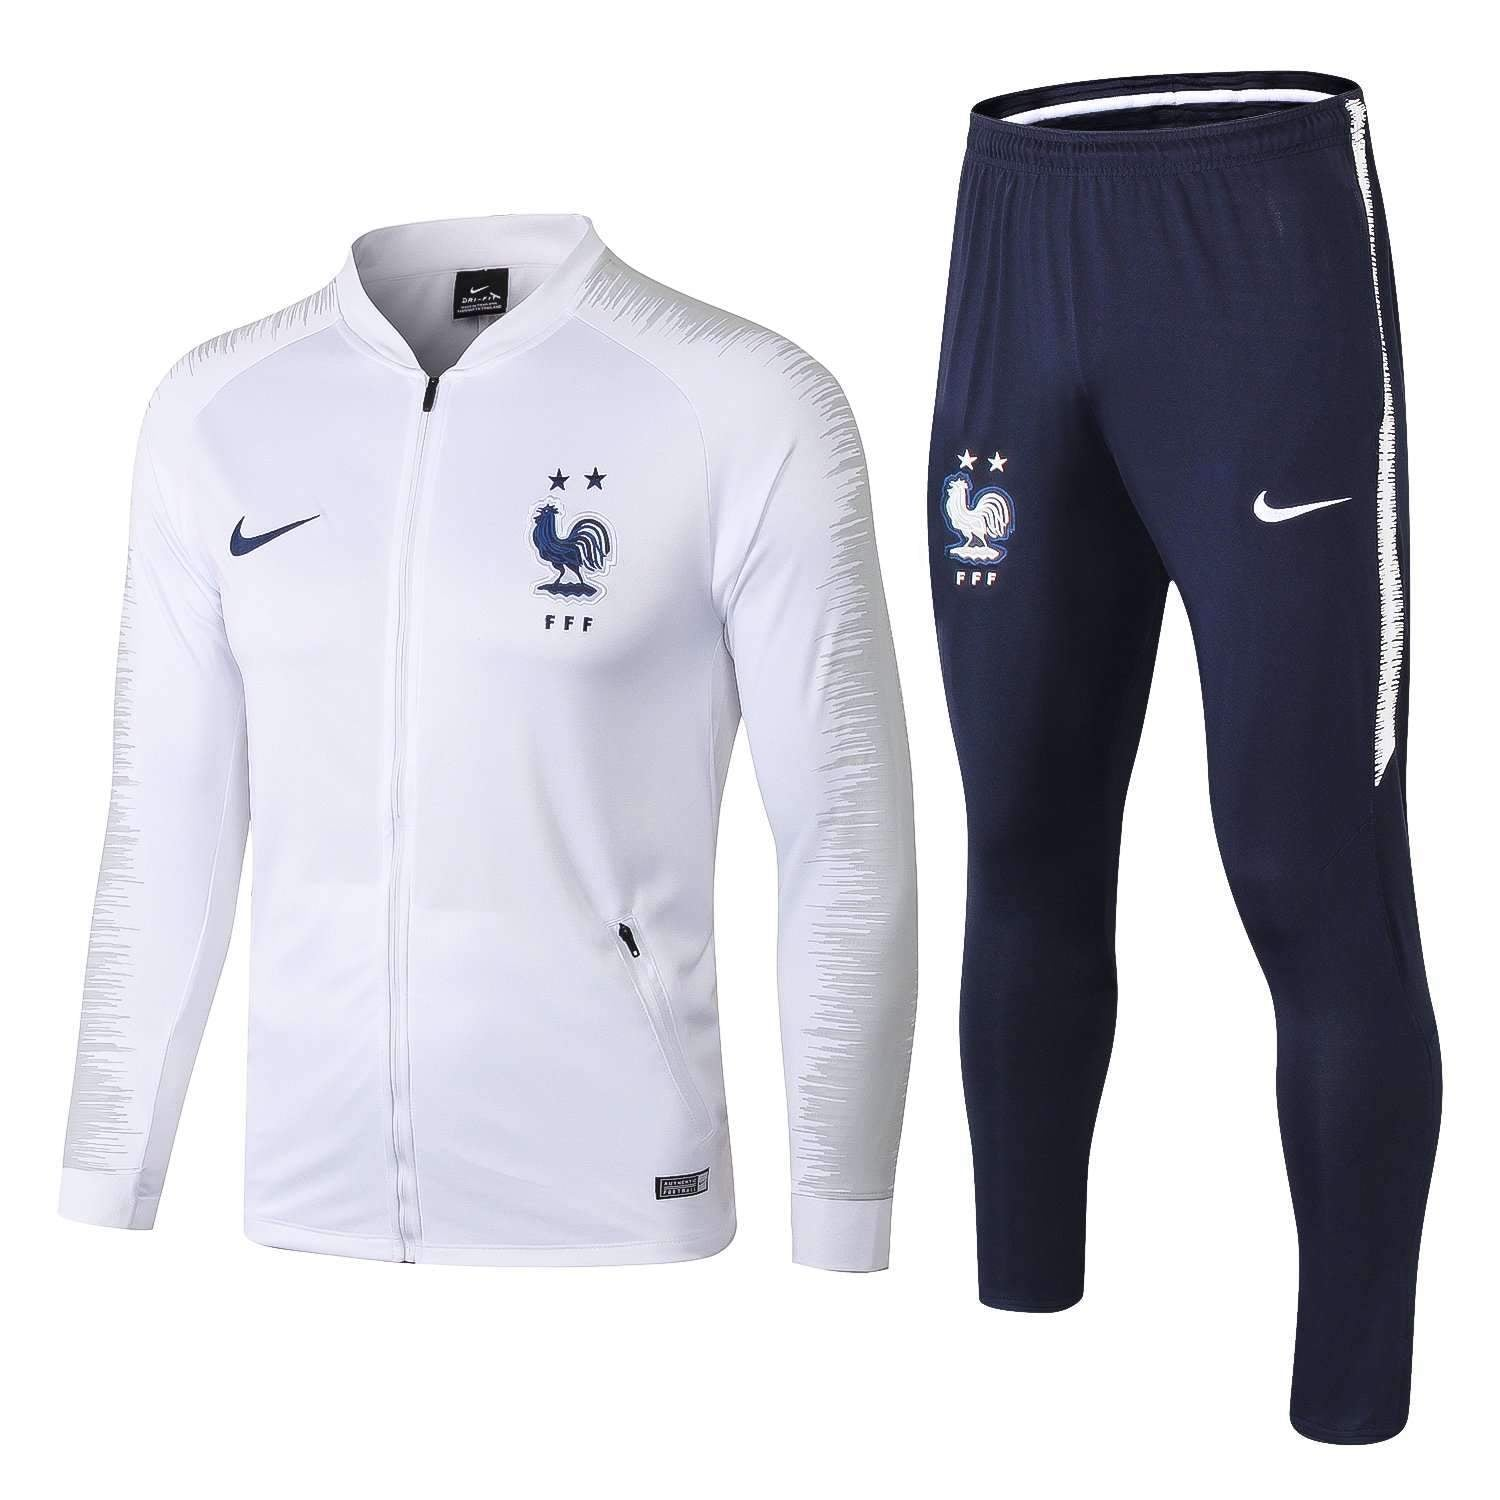 finest selection 818d1 5793e France national football team Nike 2018-19 Pre-Match Replica TRAINING White  Zip Casual TOPS TRACKSUIT FÚTBOL CALCIO SOCCER FUSSBALL BNWT Men's Jogging  ...